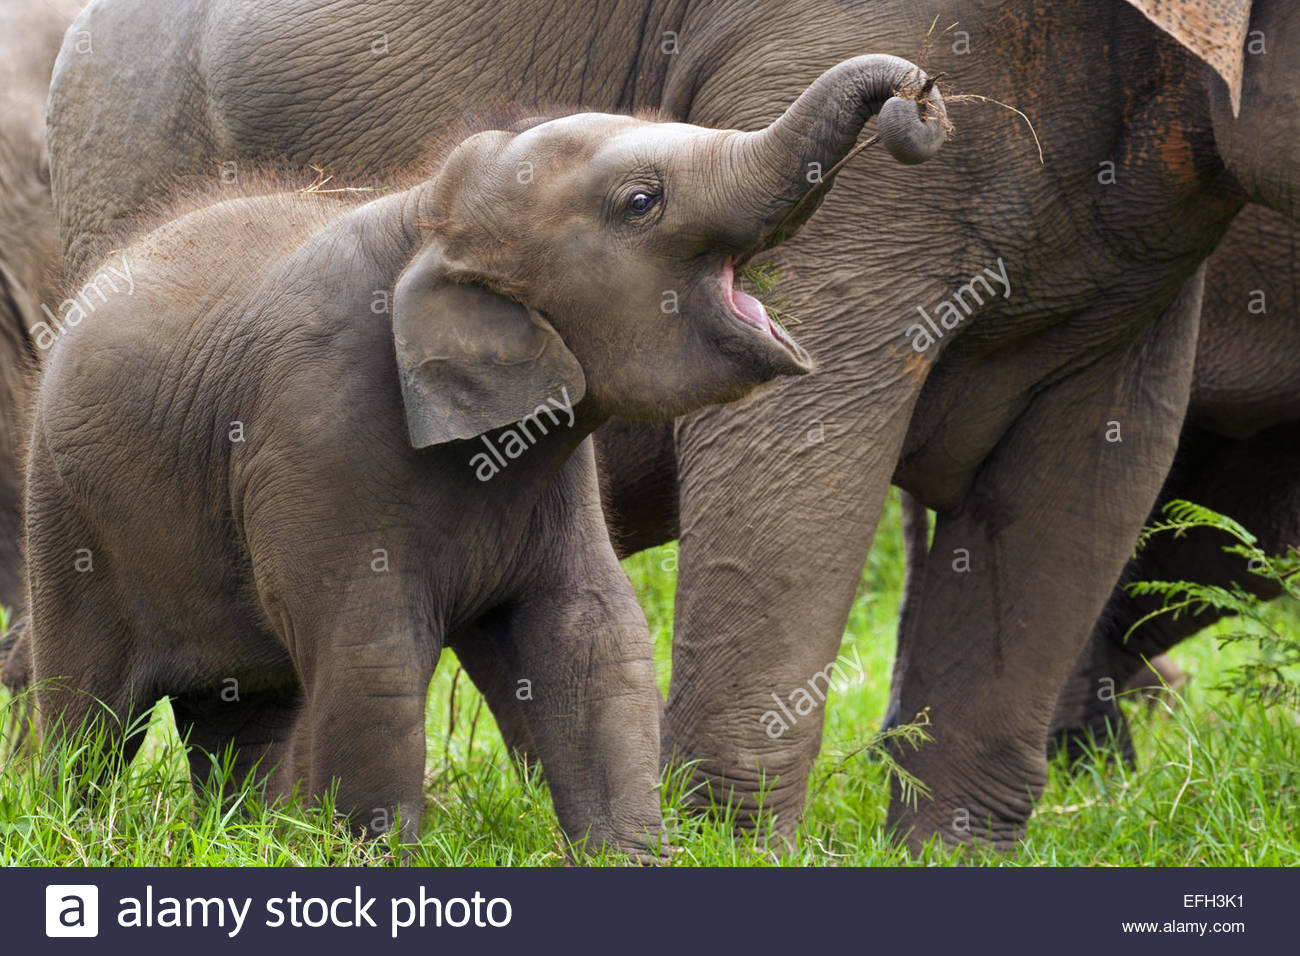 Asian elephant (Elephas maximus) calf in herd eating twig held by trunk - Stock Image